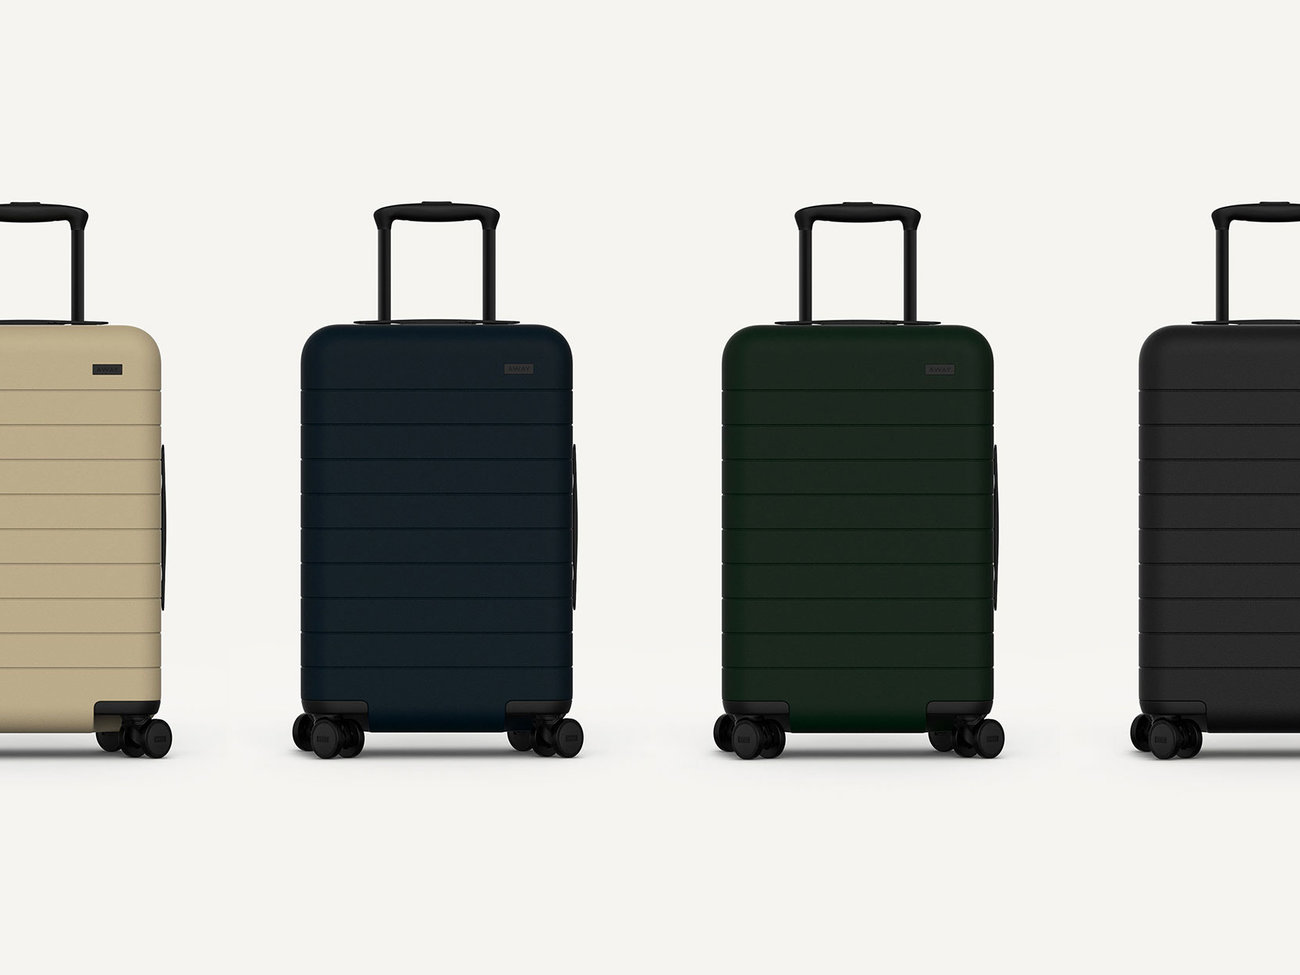 away-luggage-gg1215.jpg